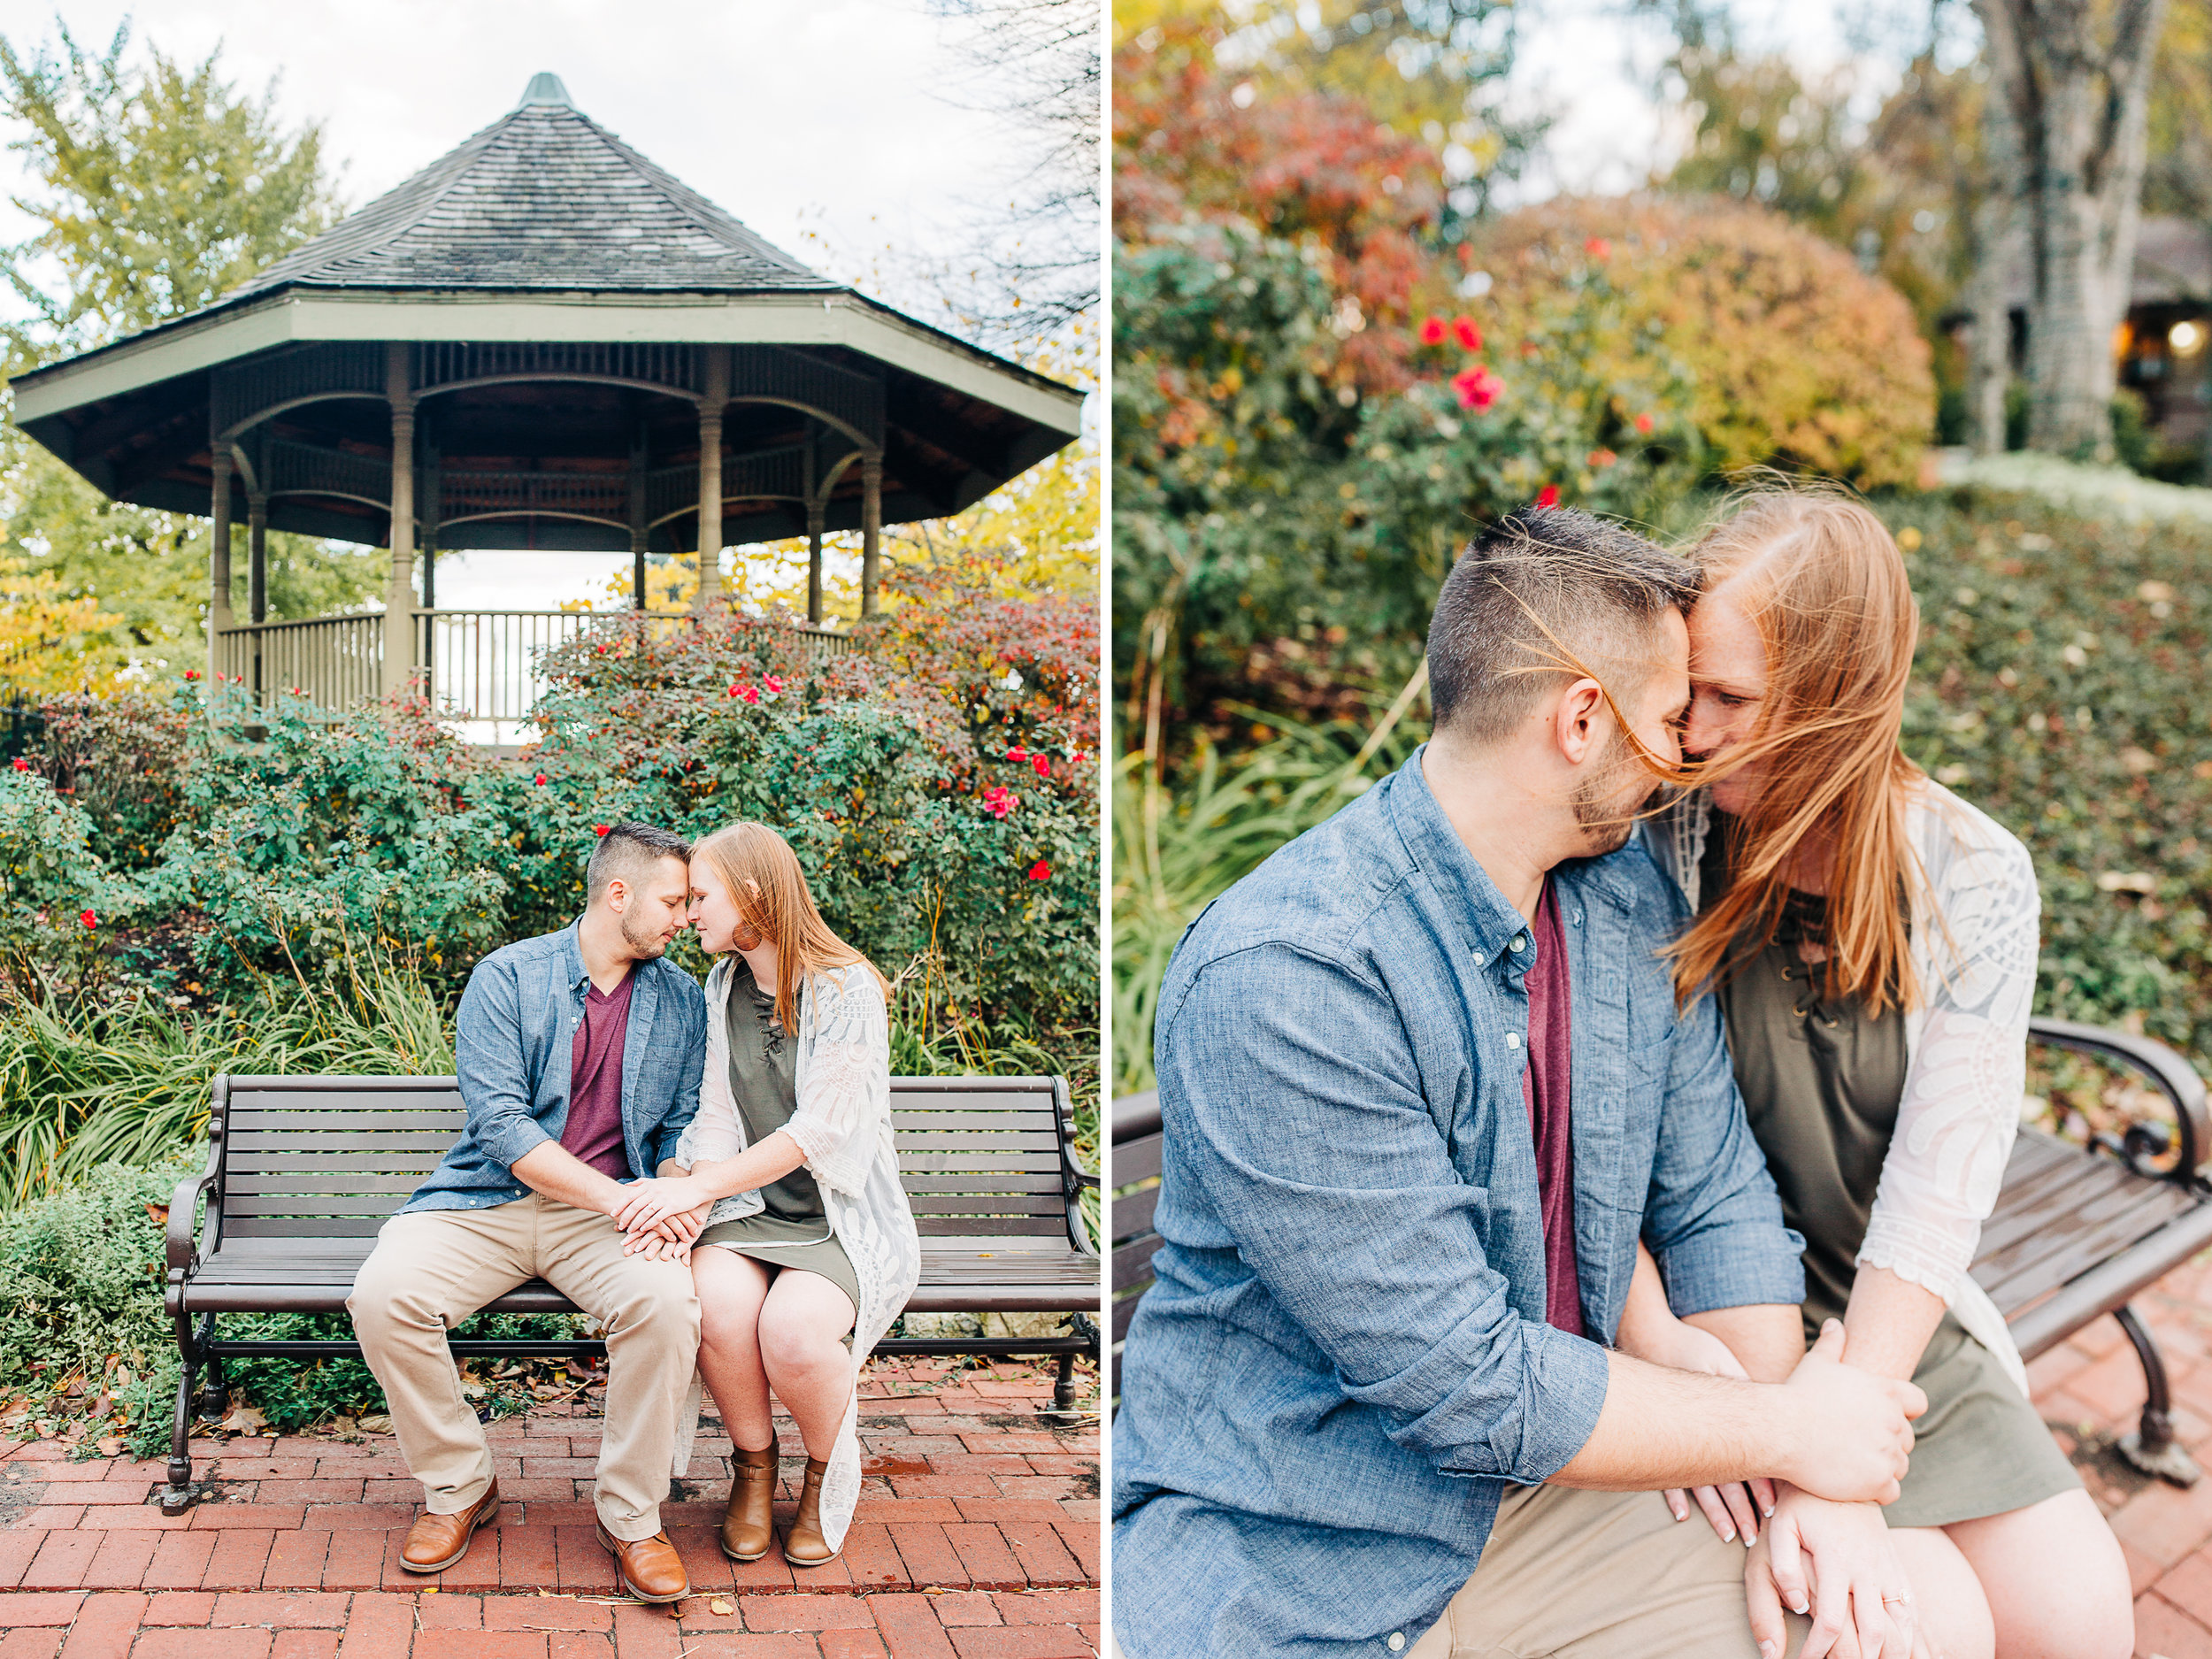 Dorothy_Louise_Photography_Sam_Nick_Engagement3.jpg